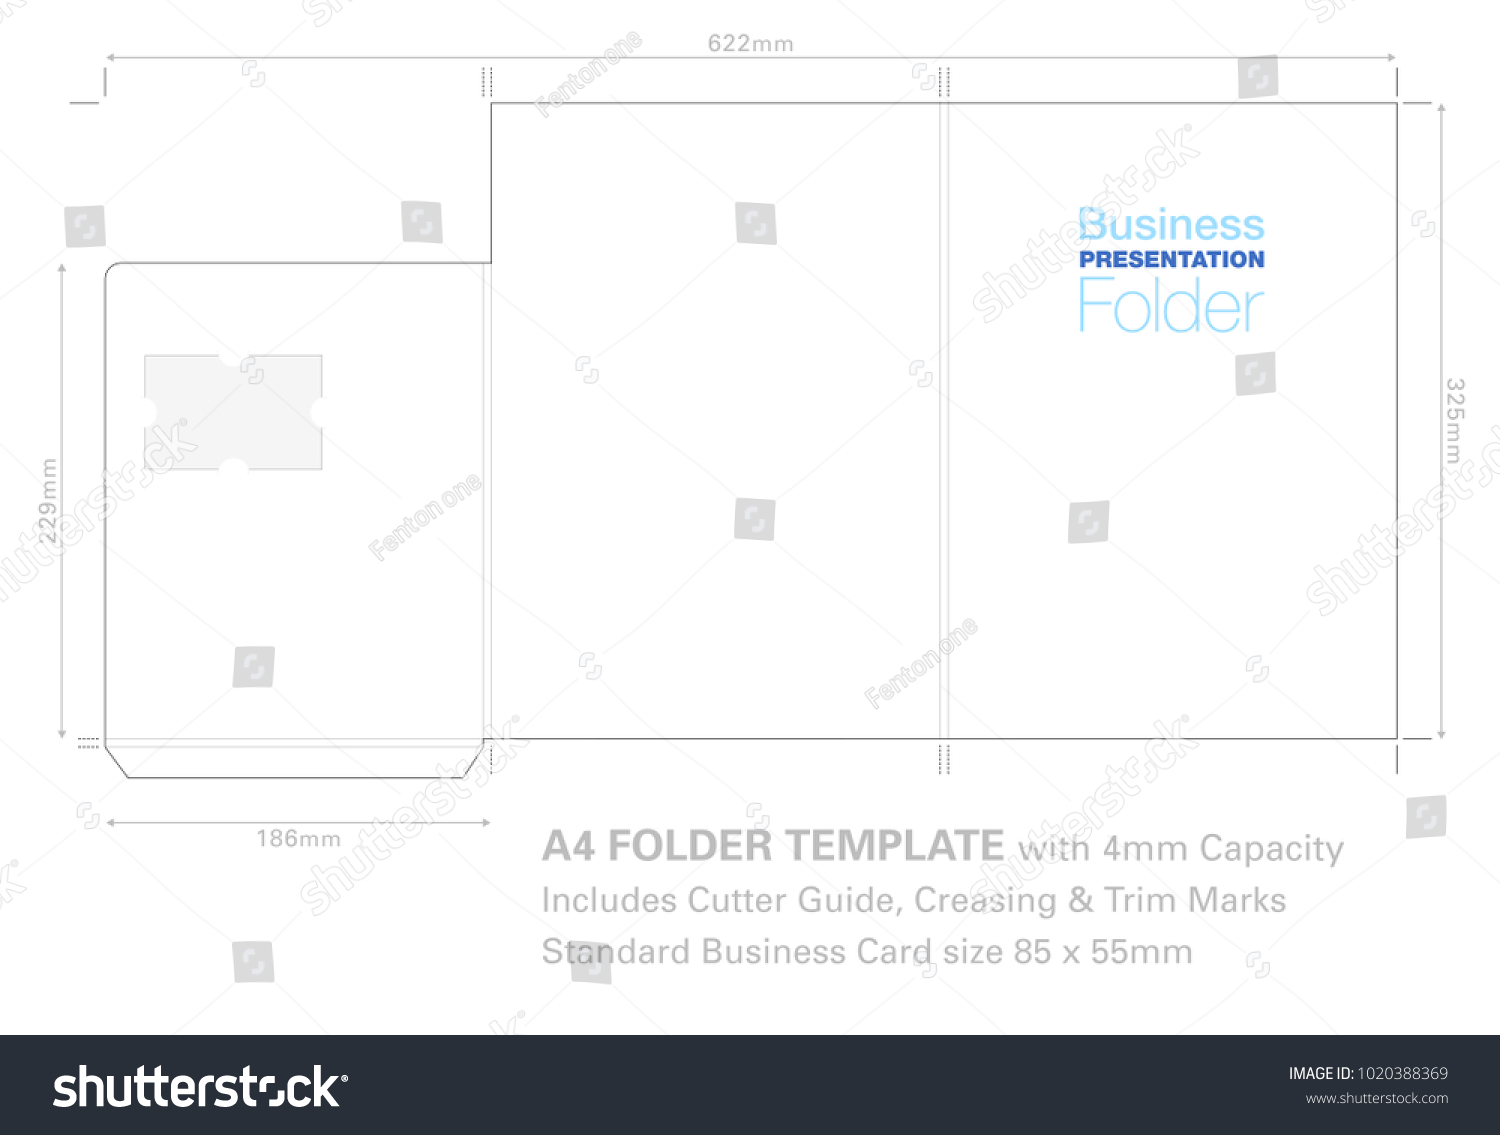 Presentation Folder A 4 Template Cutter Guide Stock Photo (Photo ...